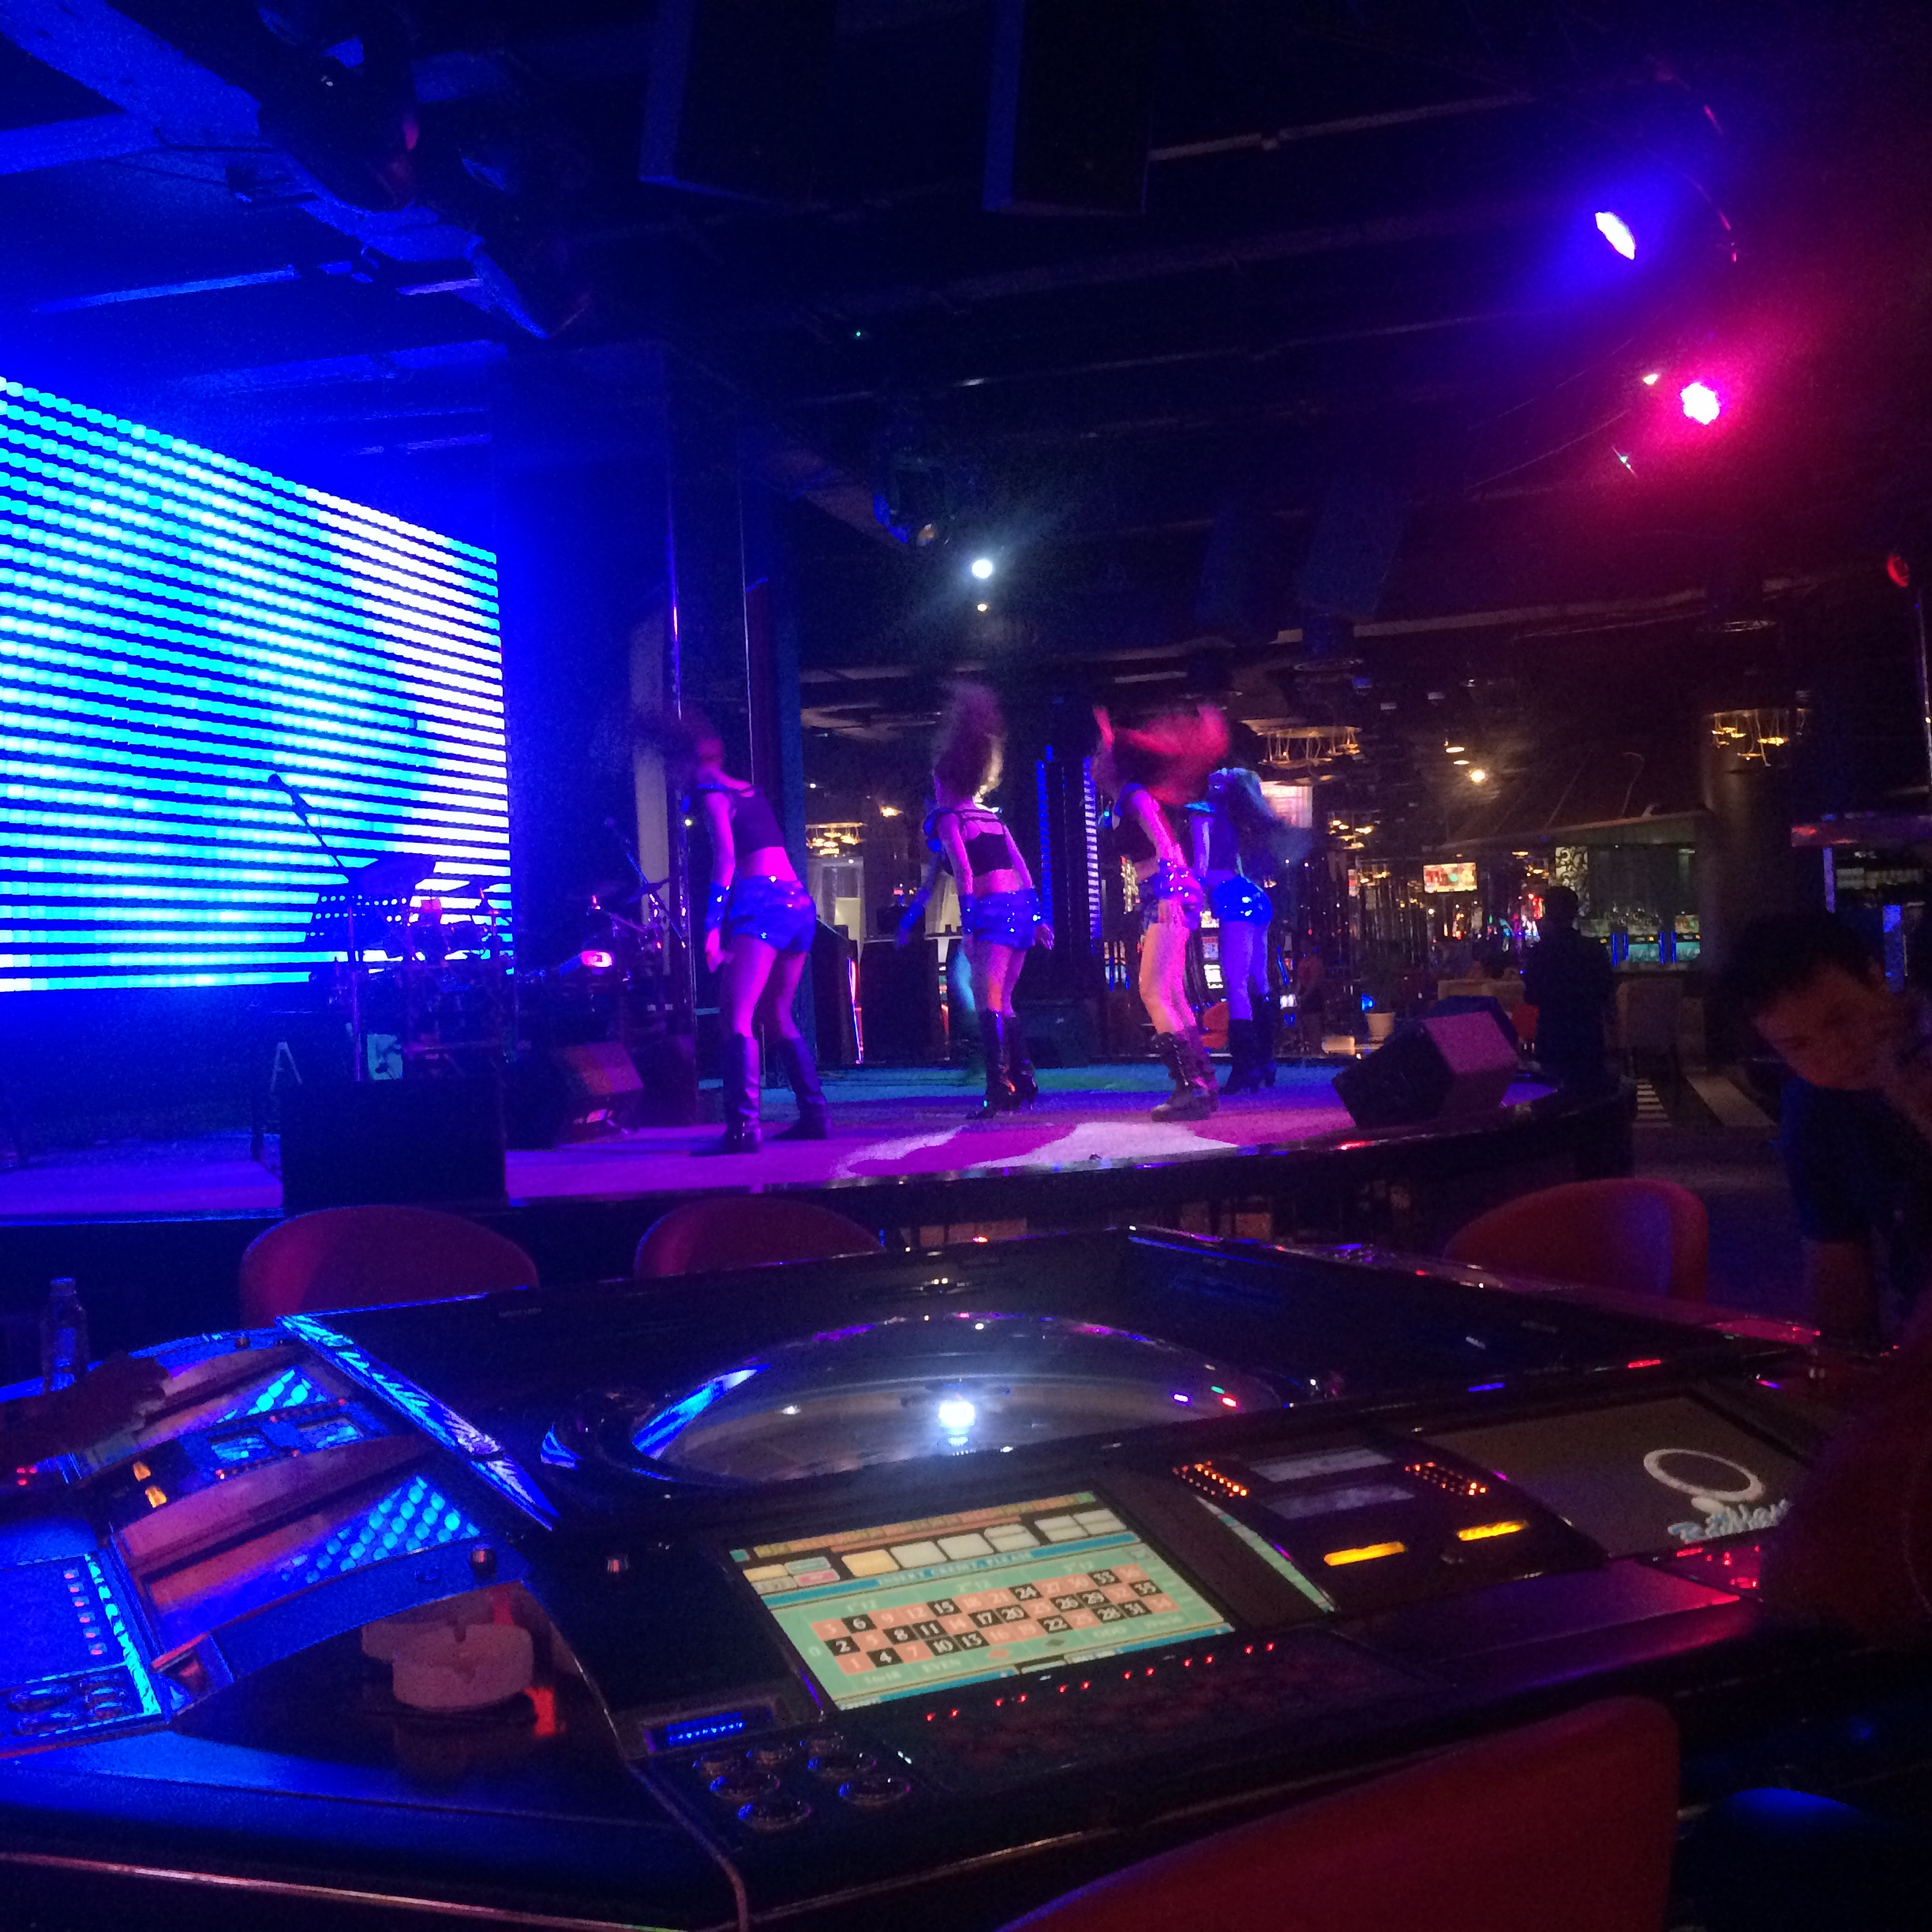 what kind of casino wouldn't have female dance troupes out on stage every night playing obnoxiously loud music?!